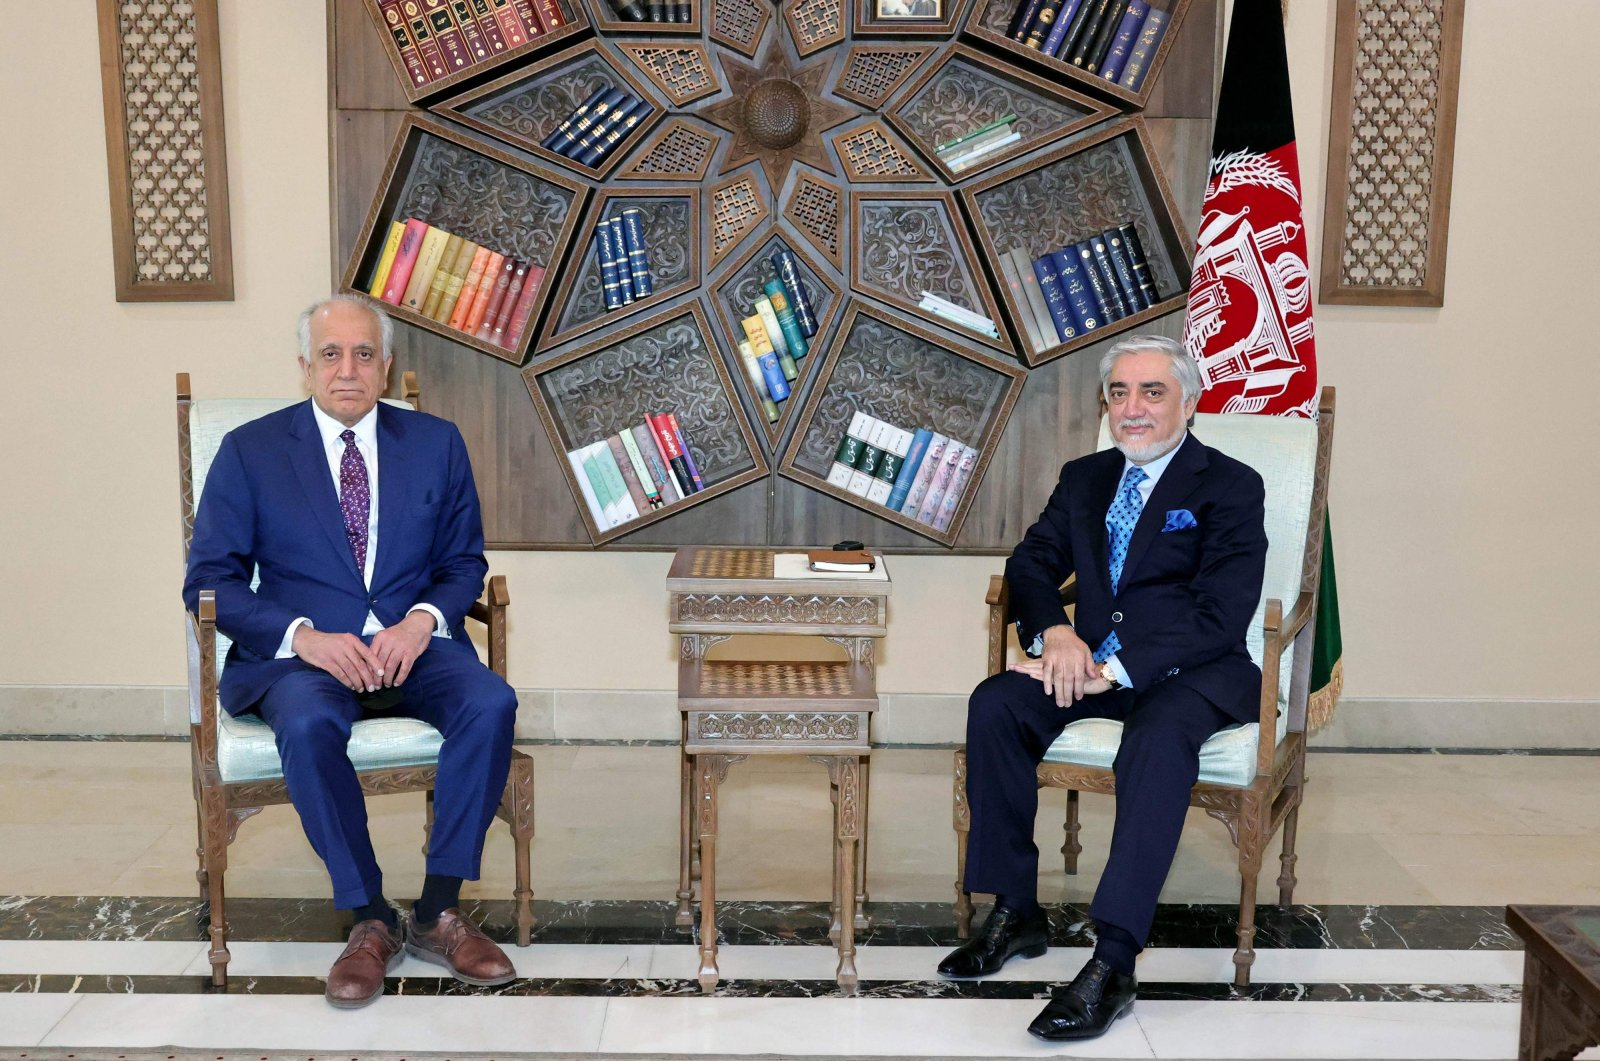 U.S. Special Representative for Afghanistan Reconciliation Zalmay Khalilzad (L) at a meeting with the chairman of Afghanistan's High Council for National Reconciliation, Abdullah Abdullah, at the Sapedar Palace in Kabul, Afghanistan, March 1, 2021. (Press Office of National Reconciliation Council of Afghanistan vie AFP)